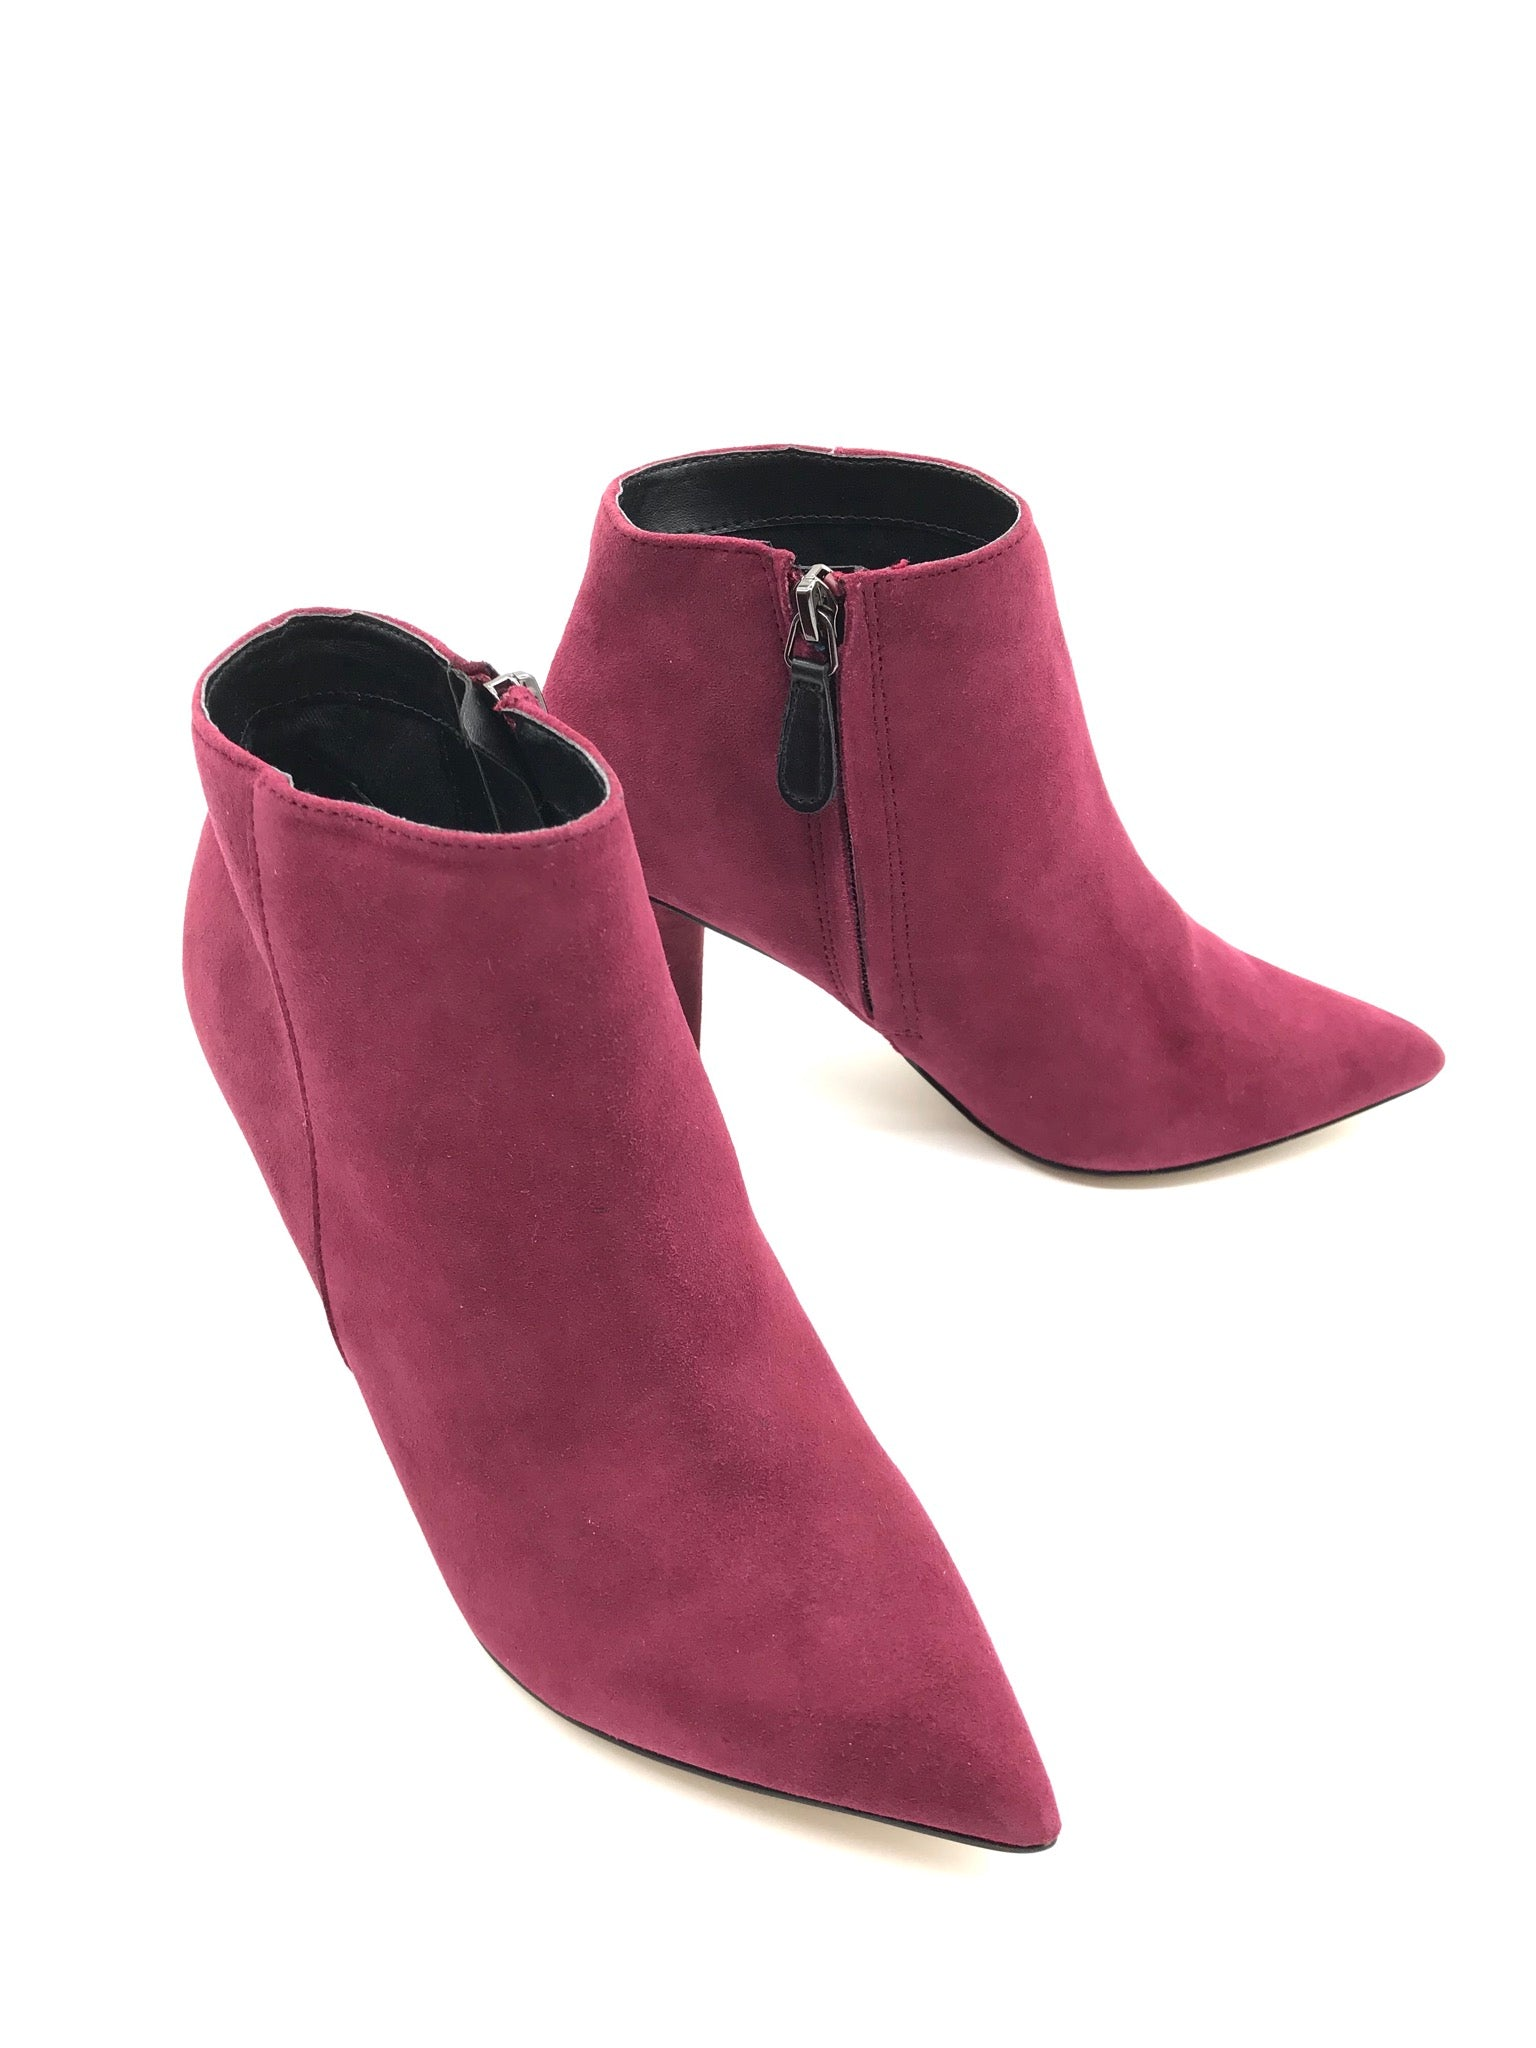 Photo #4 - BRAND: DOLCE VITA <BR>STYLE: BOOTS ANKLE <BR>COLOR: RASPBERRY <BR>SIZE: 7.5 <BR>SKU: 262-26211-140557<BR>NEW CONDITION - NEVER WORN